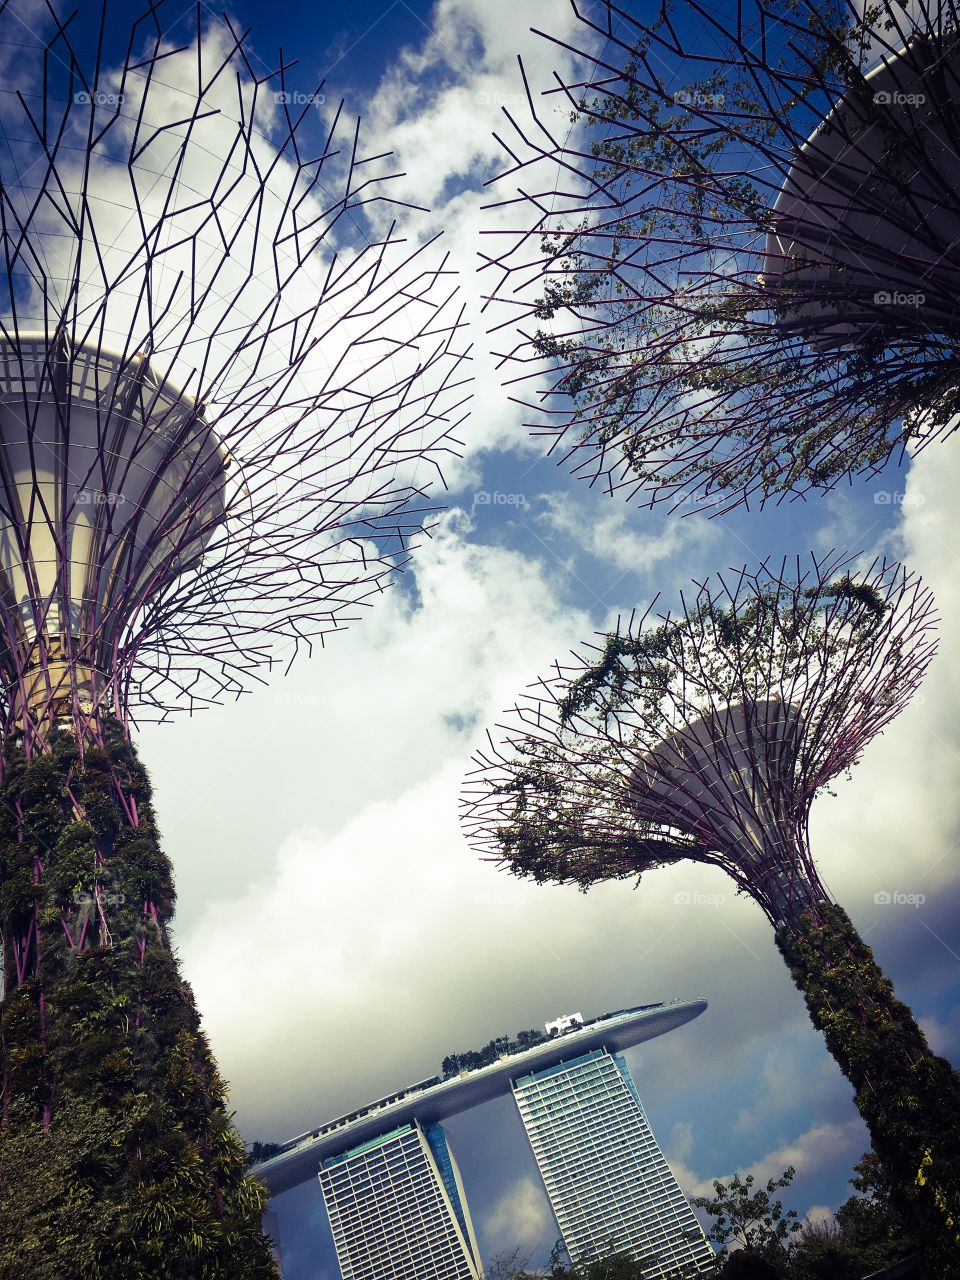 Electric trees. Gardens by the bay. Singapore.